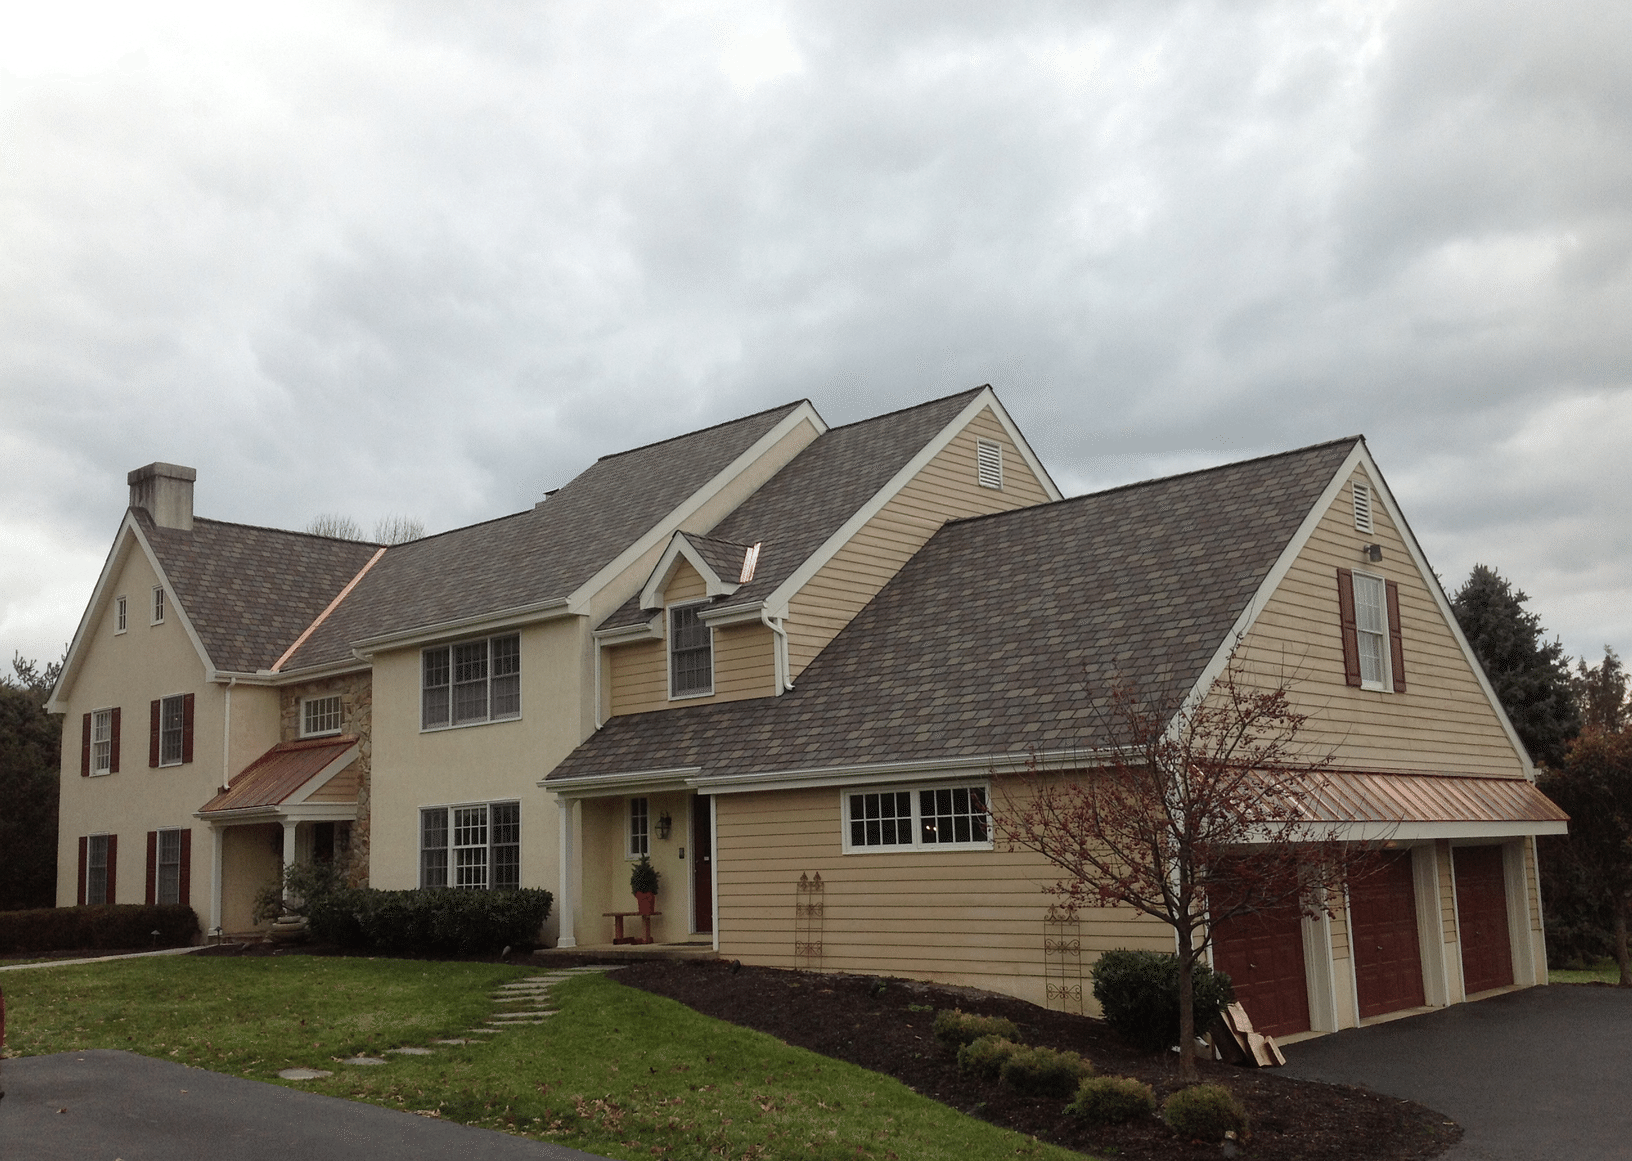 Certainteed Highland Slate Roof Replacement with Copper Accents in Malvern, PA - After Photo